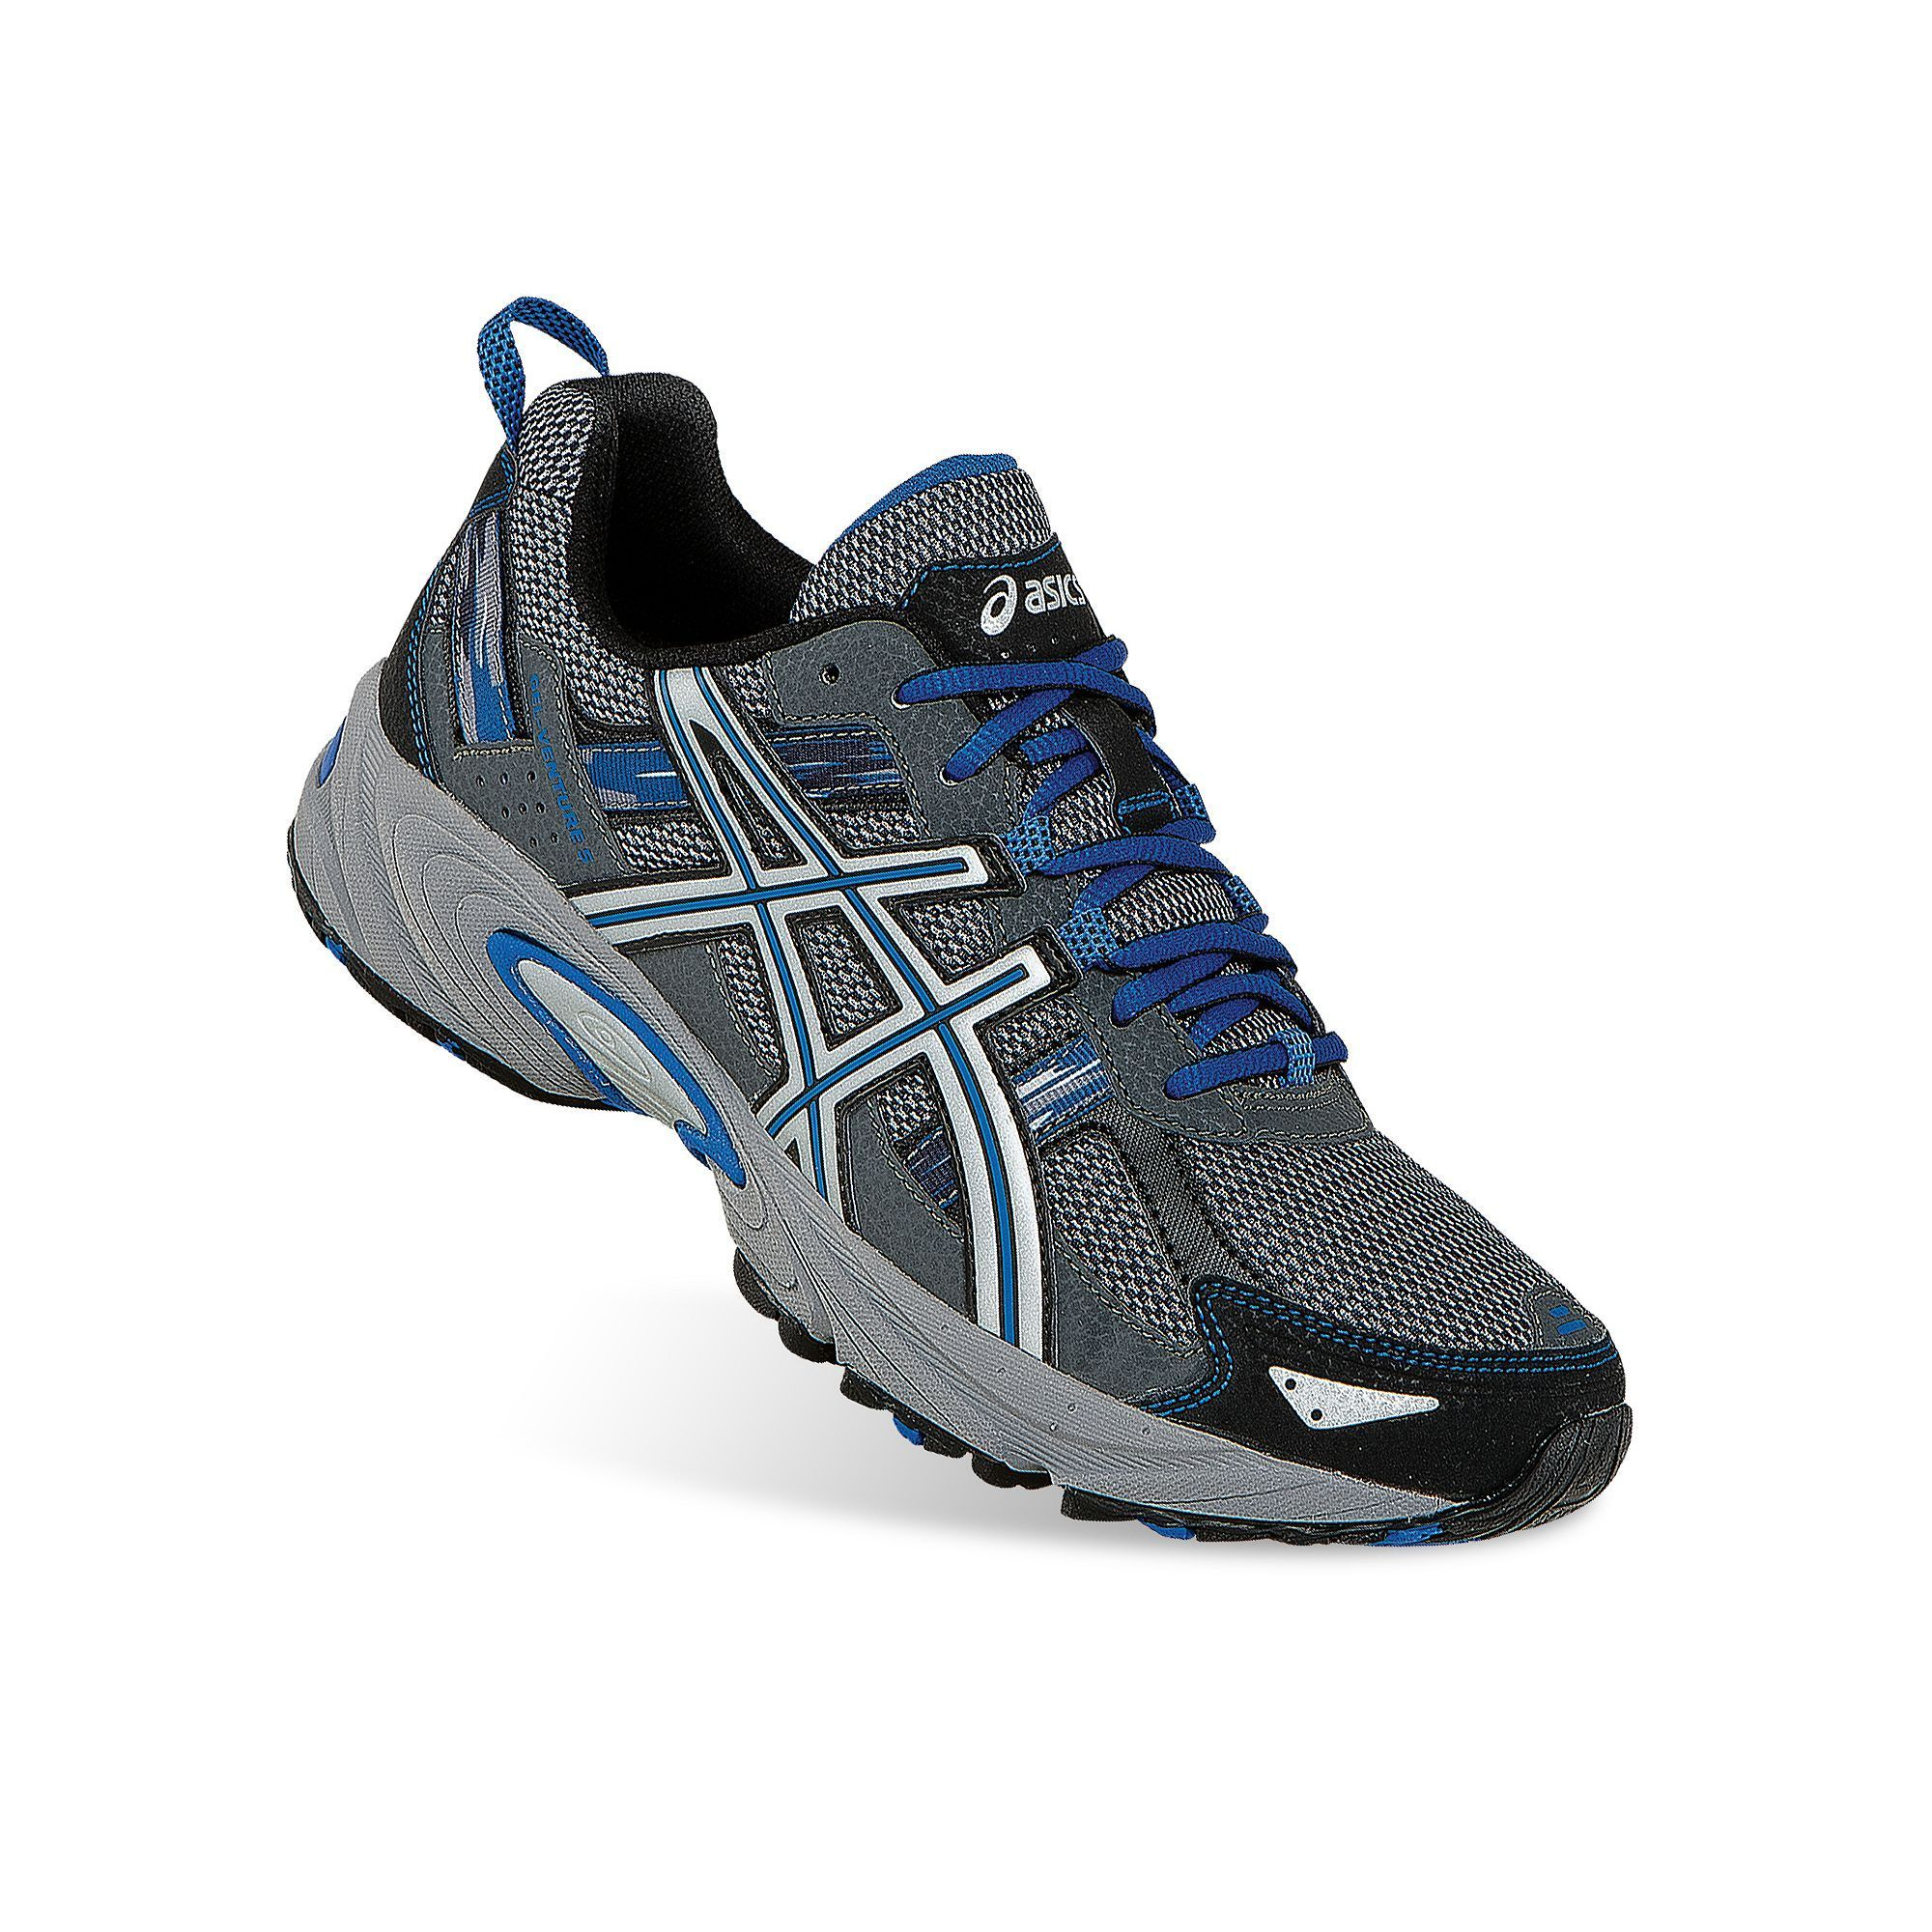 ASICS GELVenture 5 Men's Trail Running Shoes Trail